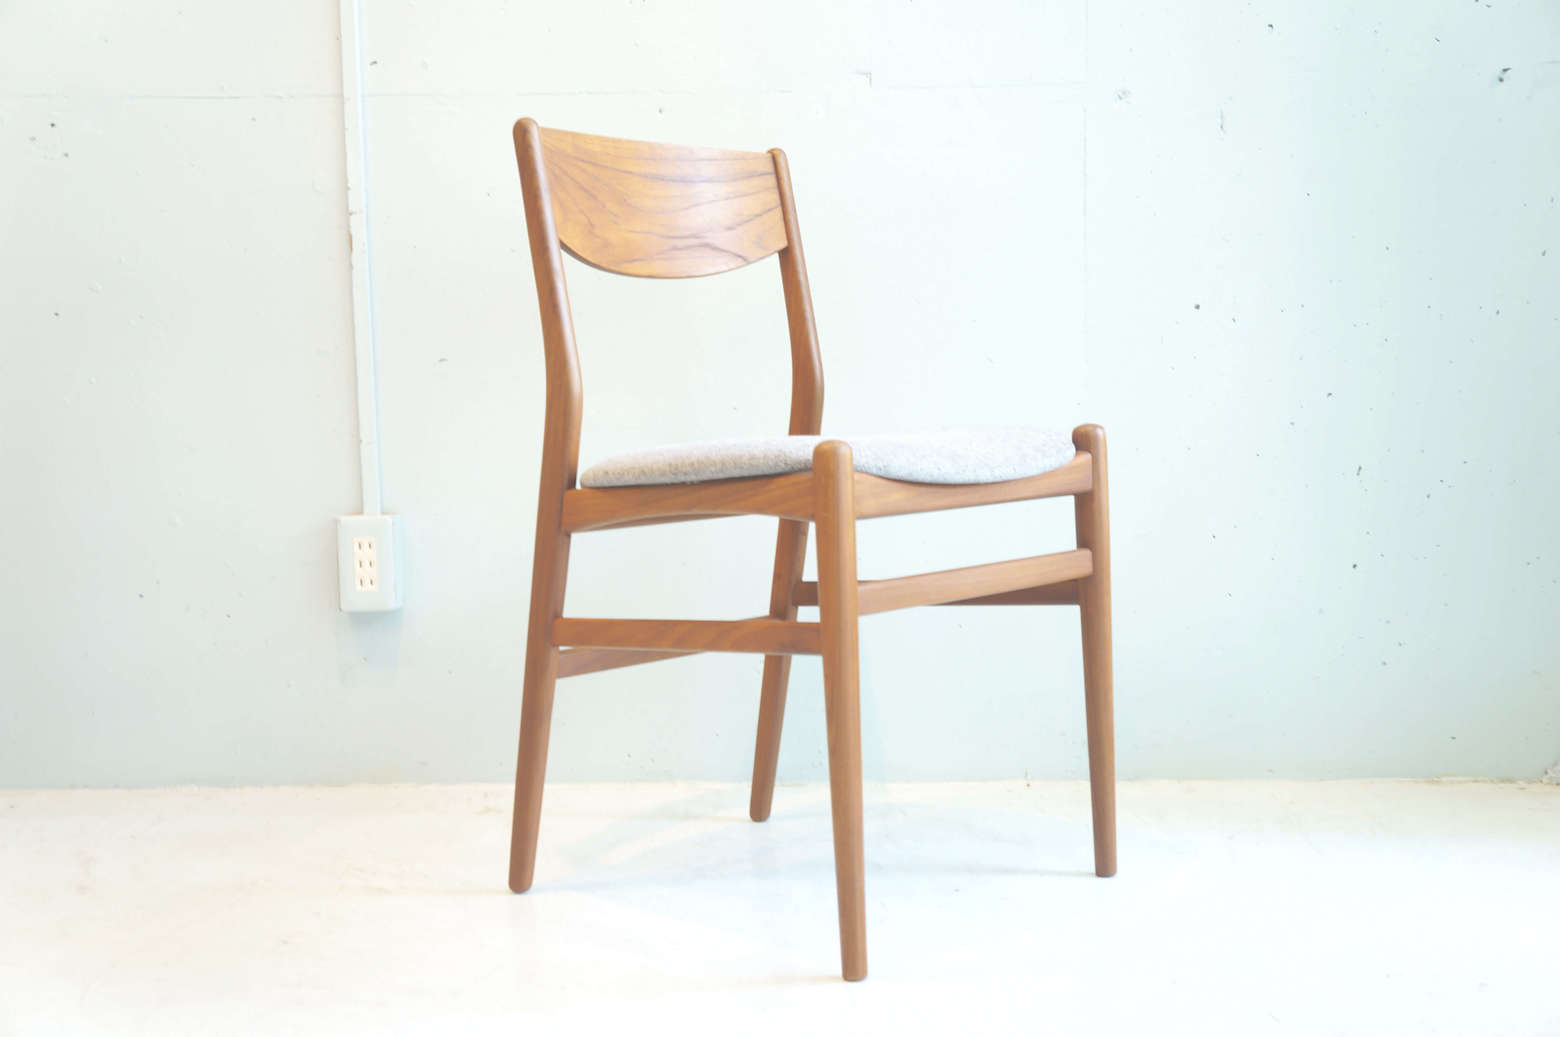 Danish Vintage Dining Chair/デンマーク ヴィンテージ ダイニングチェア 1